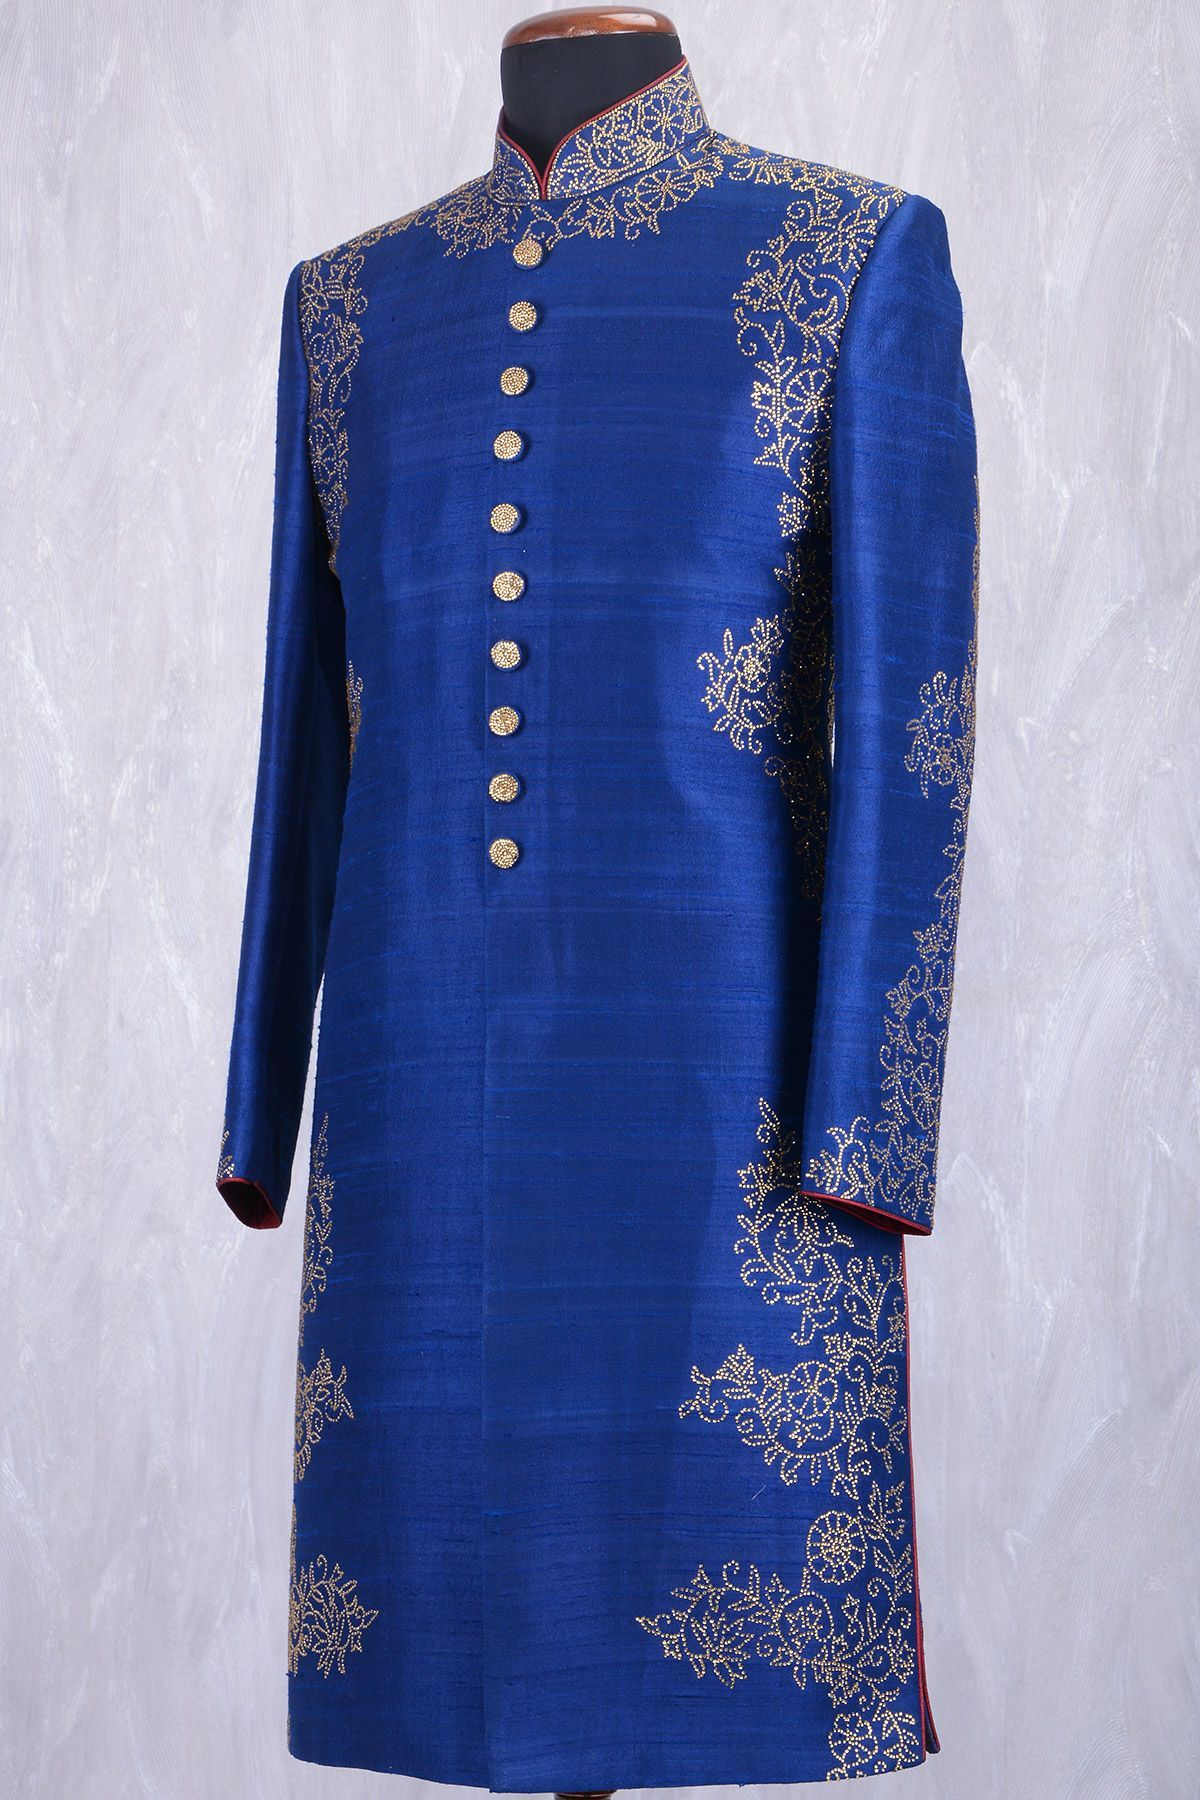 Ocean blue raw silk stone embroidered wedding sherwanish